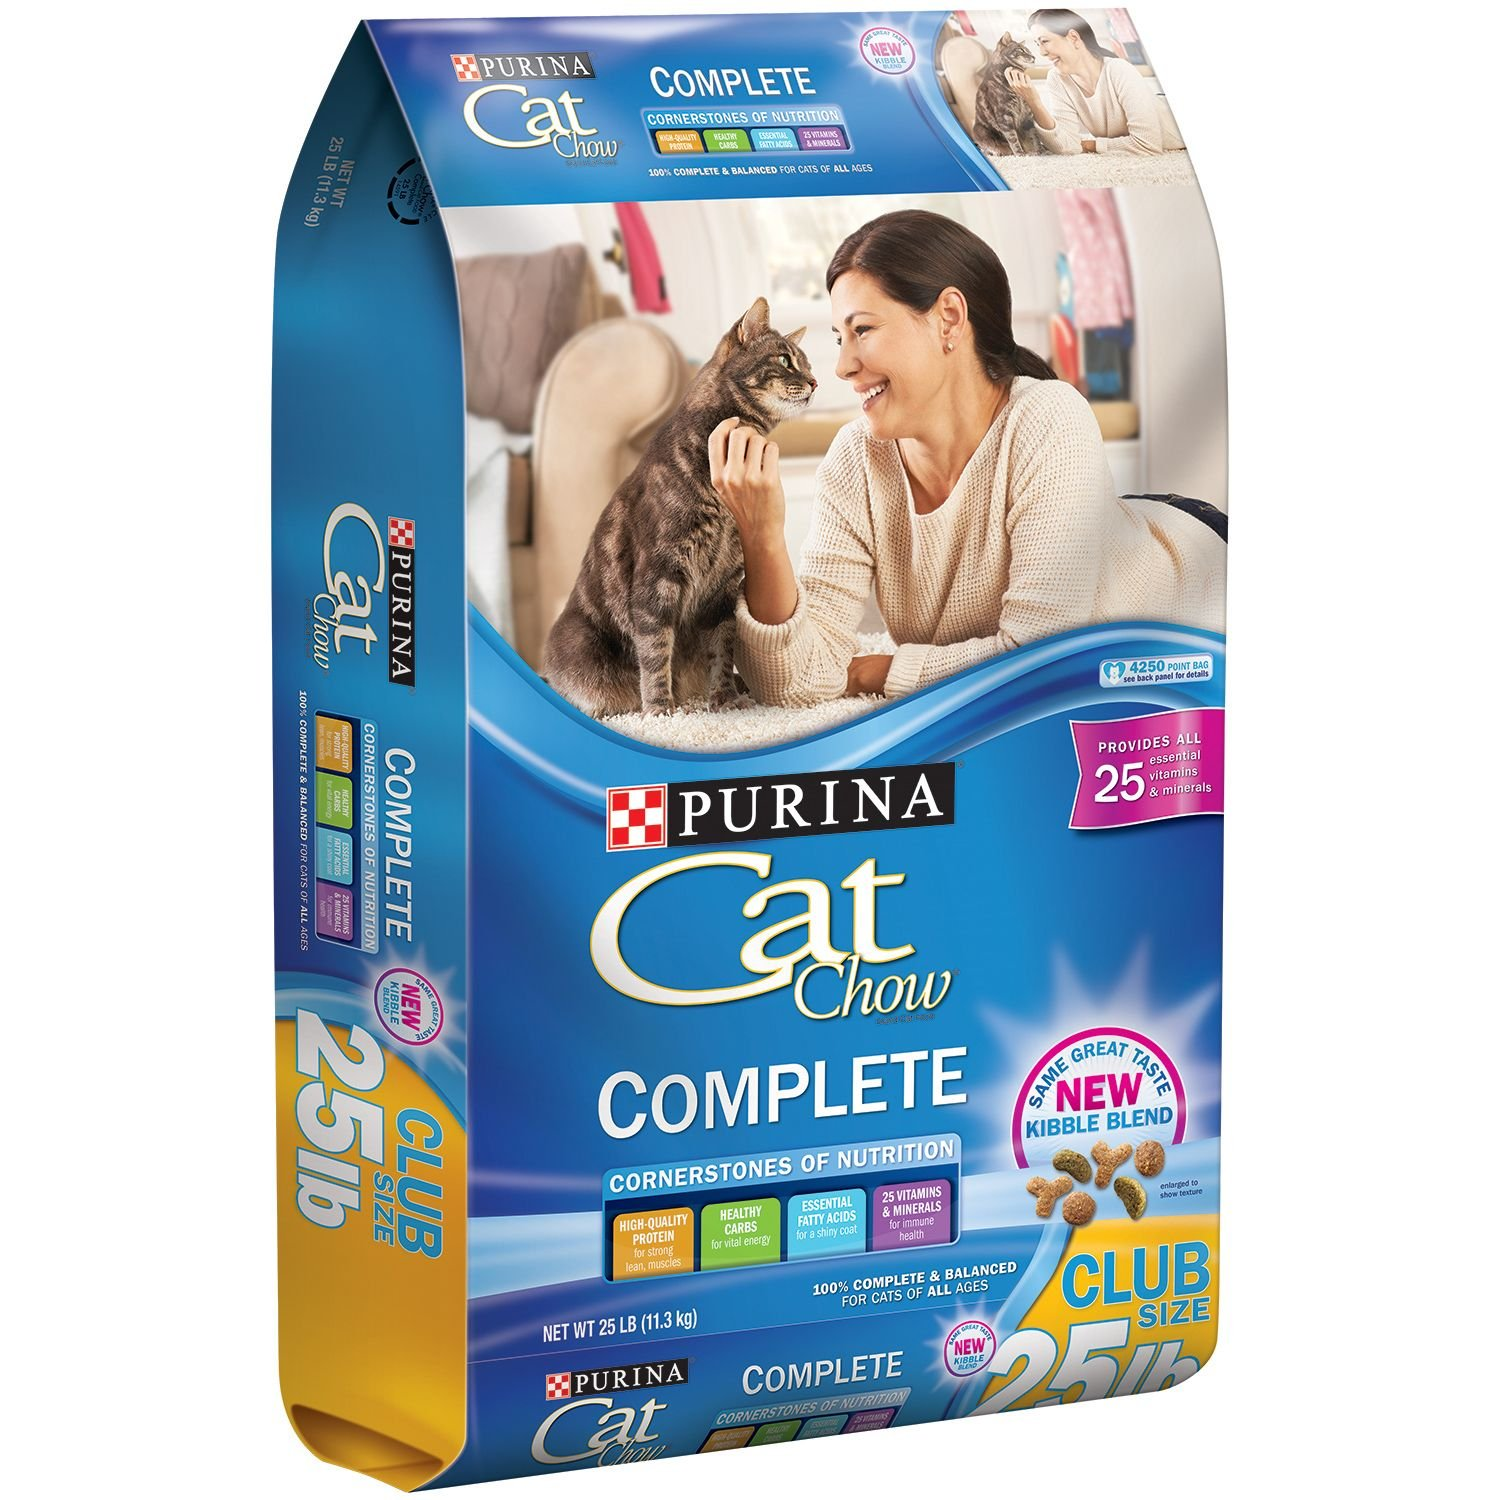 Purina Complete Cat Chow that Tastes Excellent